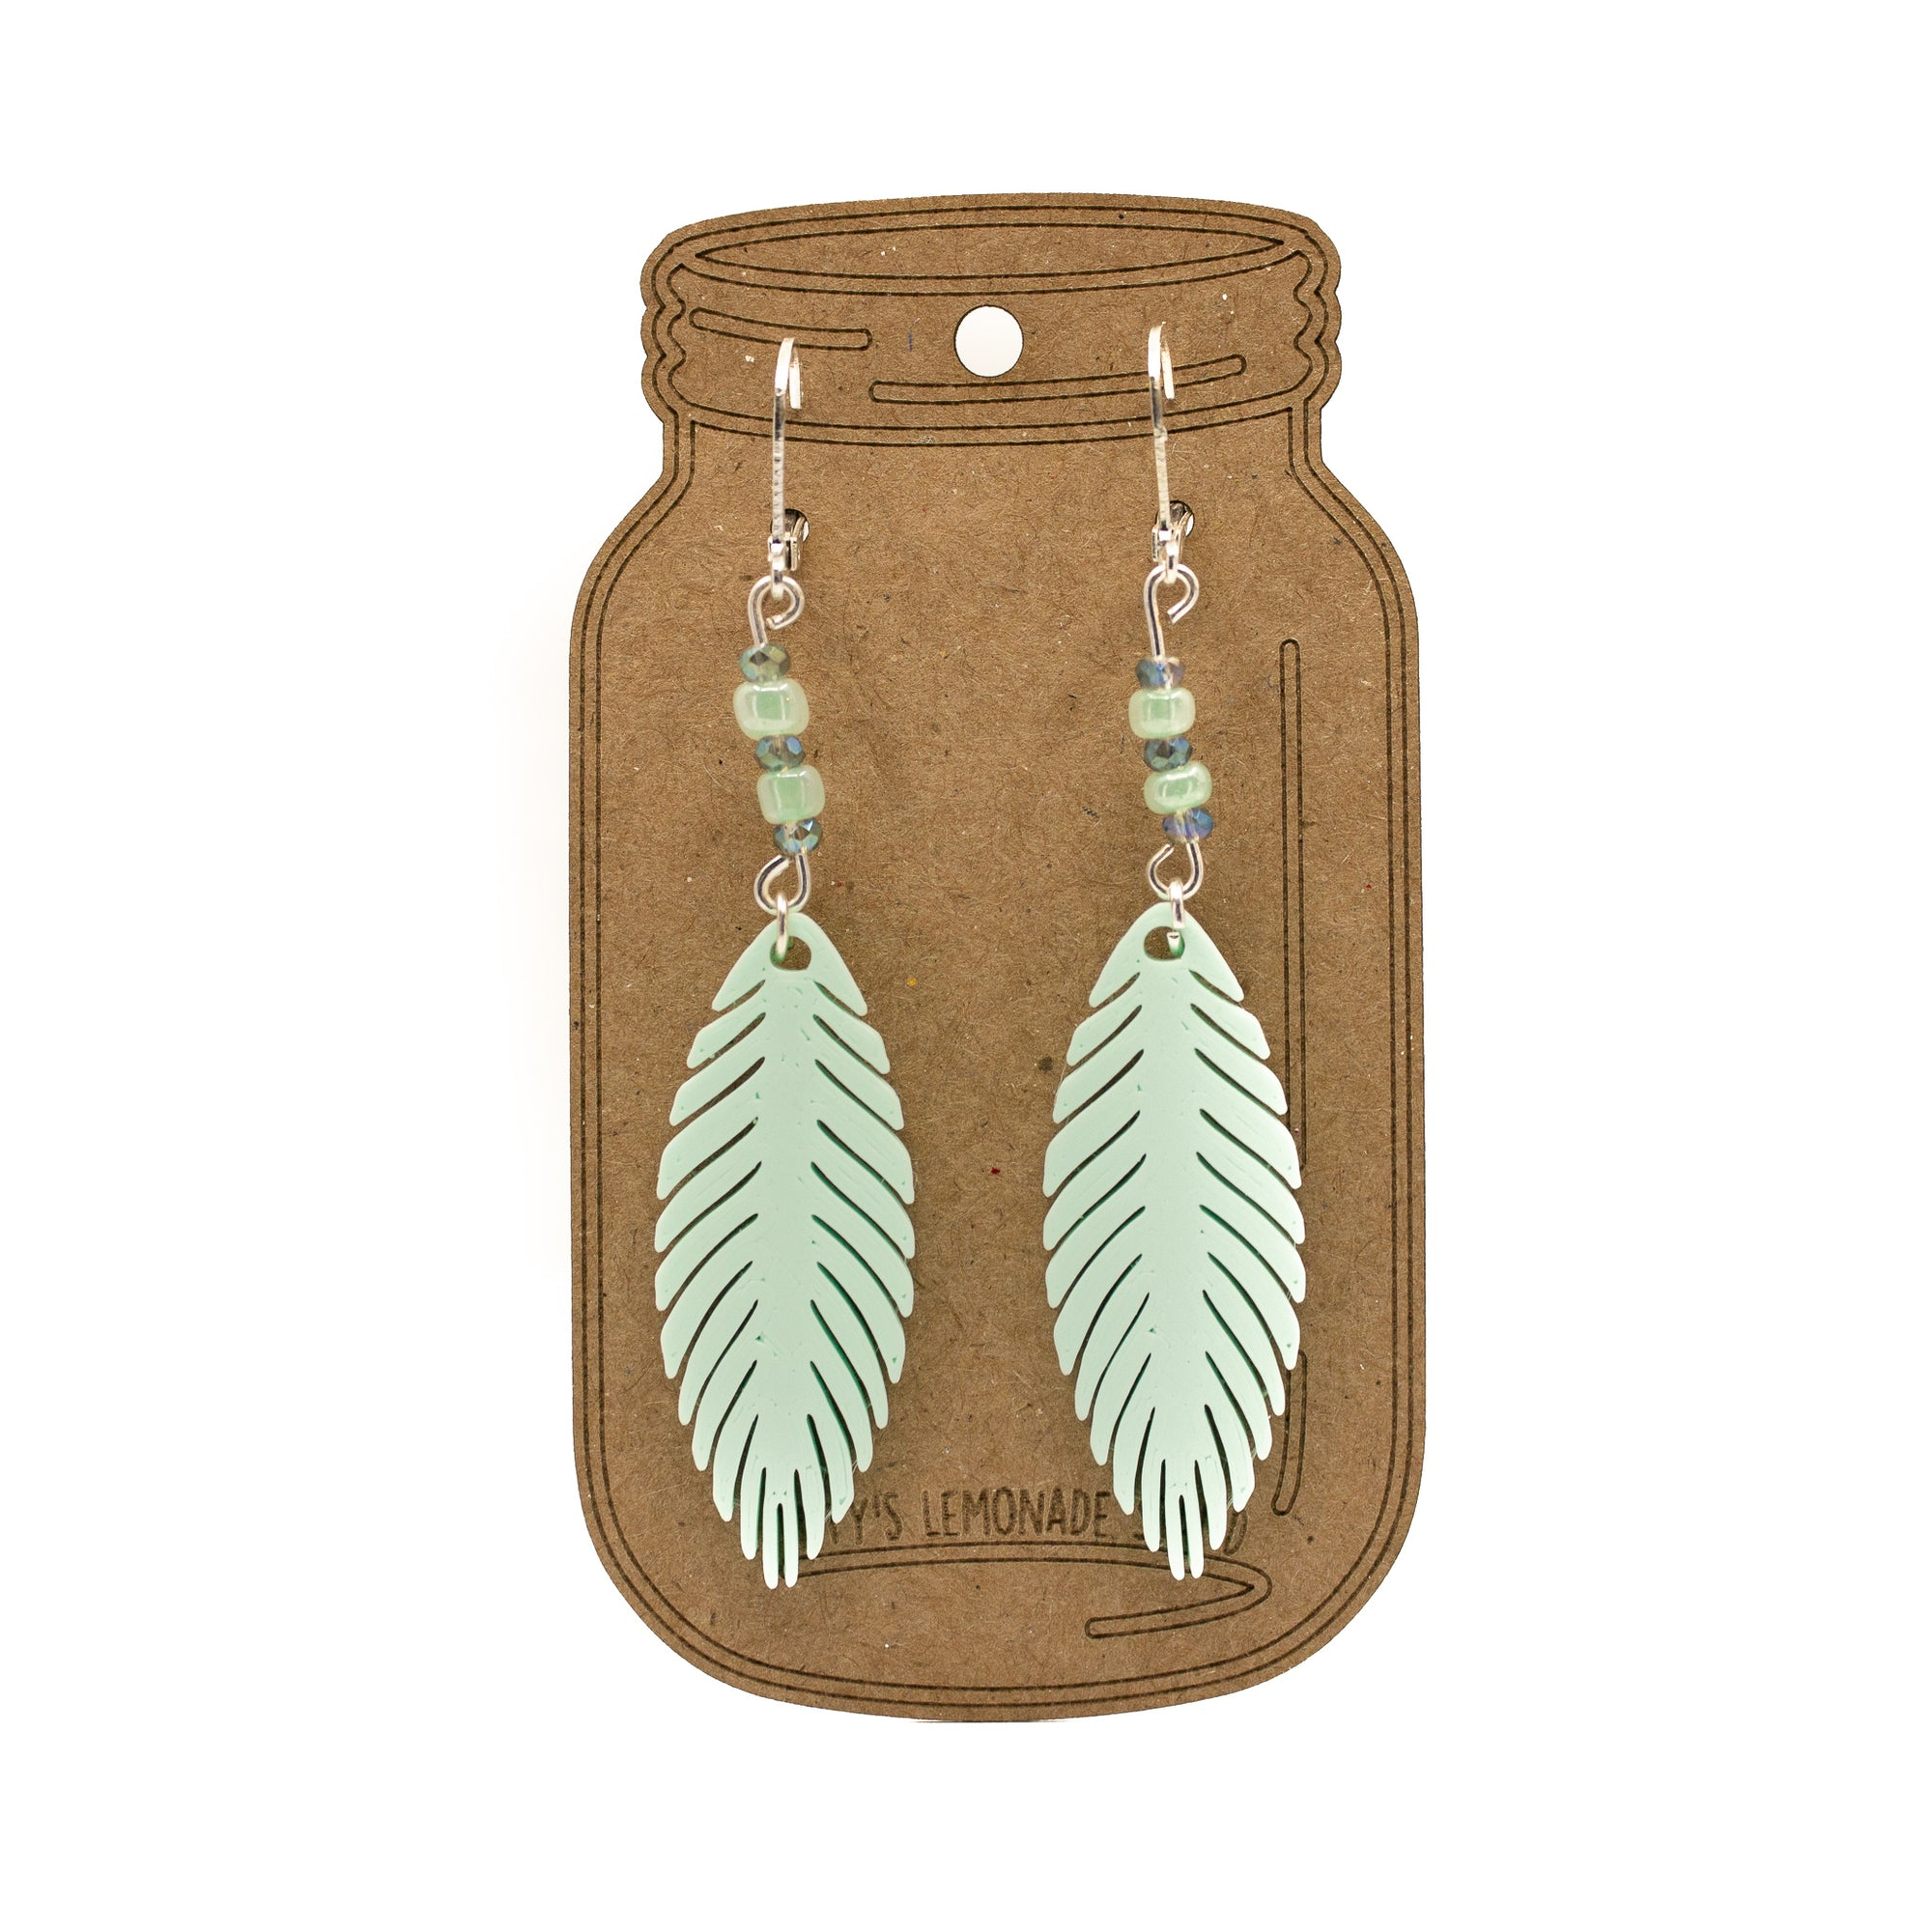 TiffysLemonadeStand - On The Wind - Opaque - Clasp Earrings - Earrings - clasp, opaque - $12